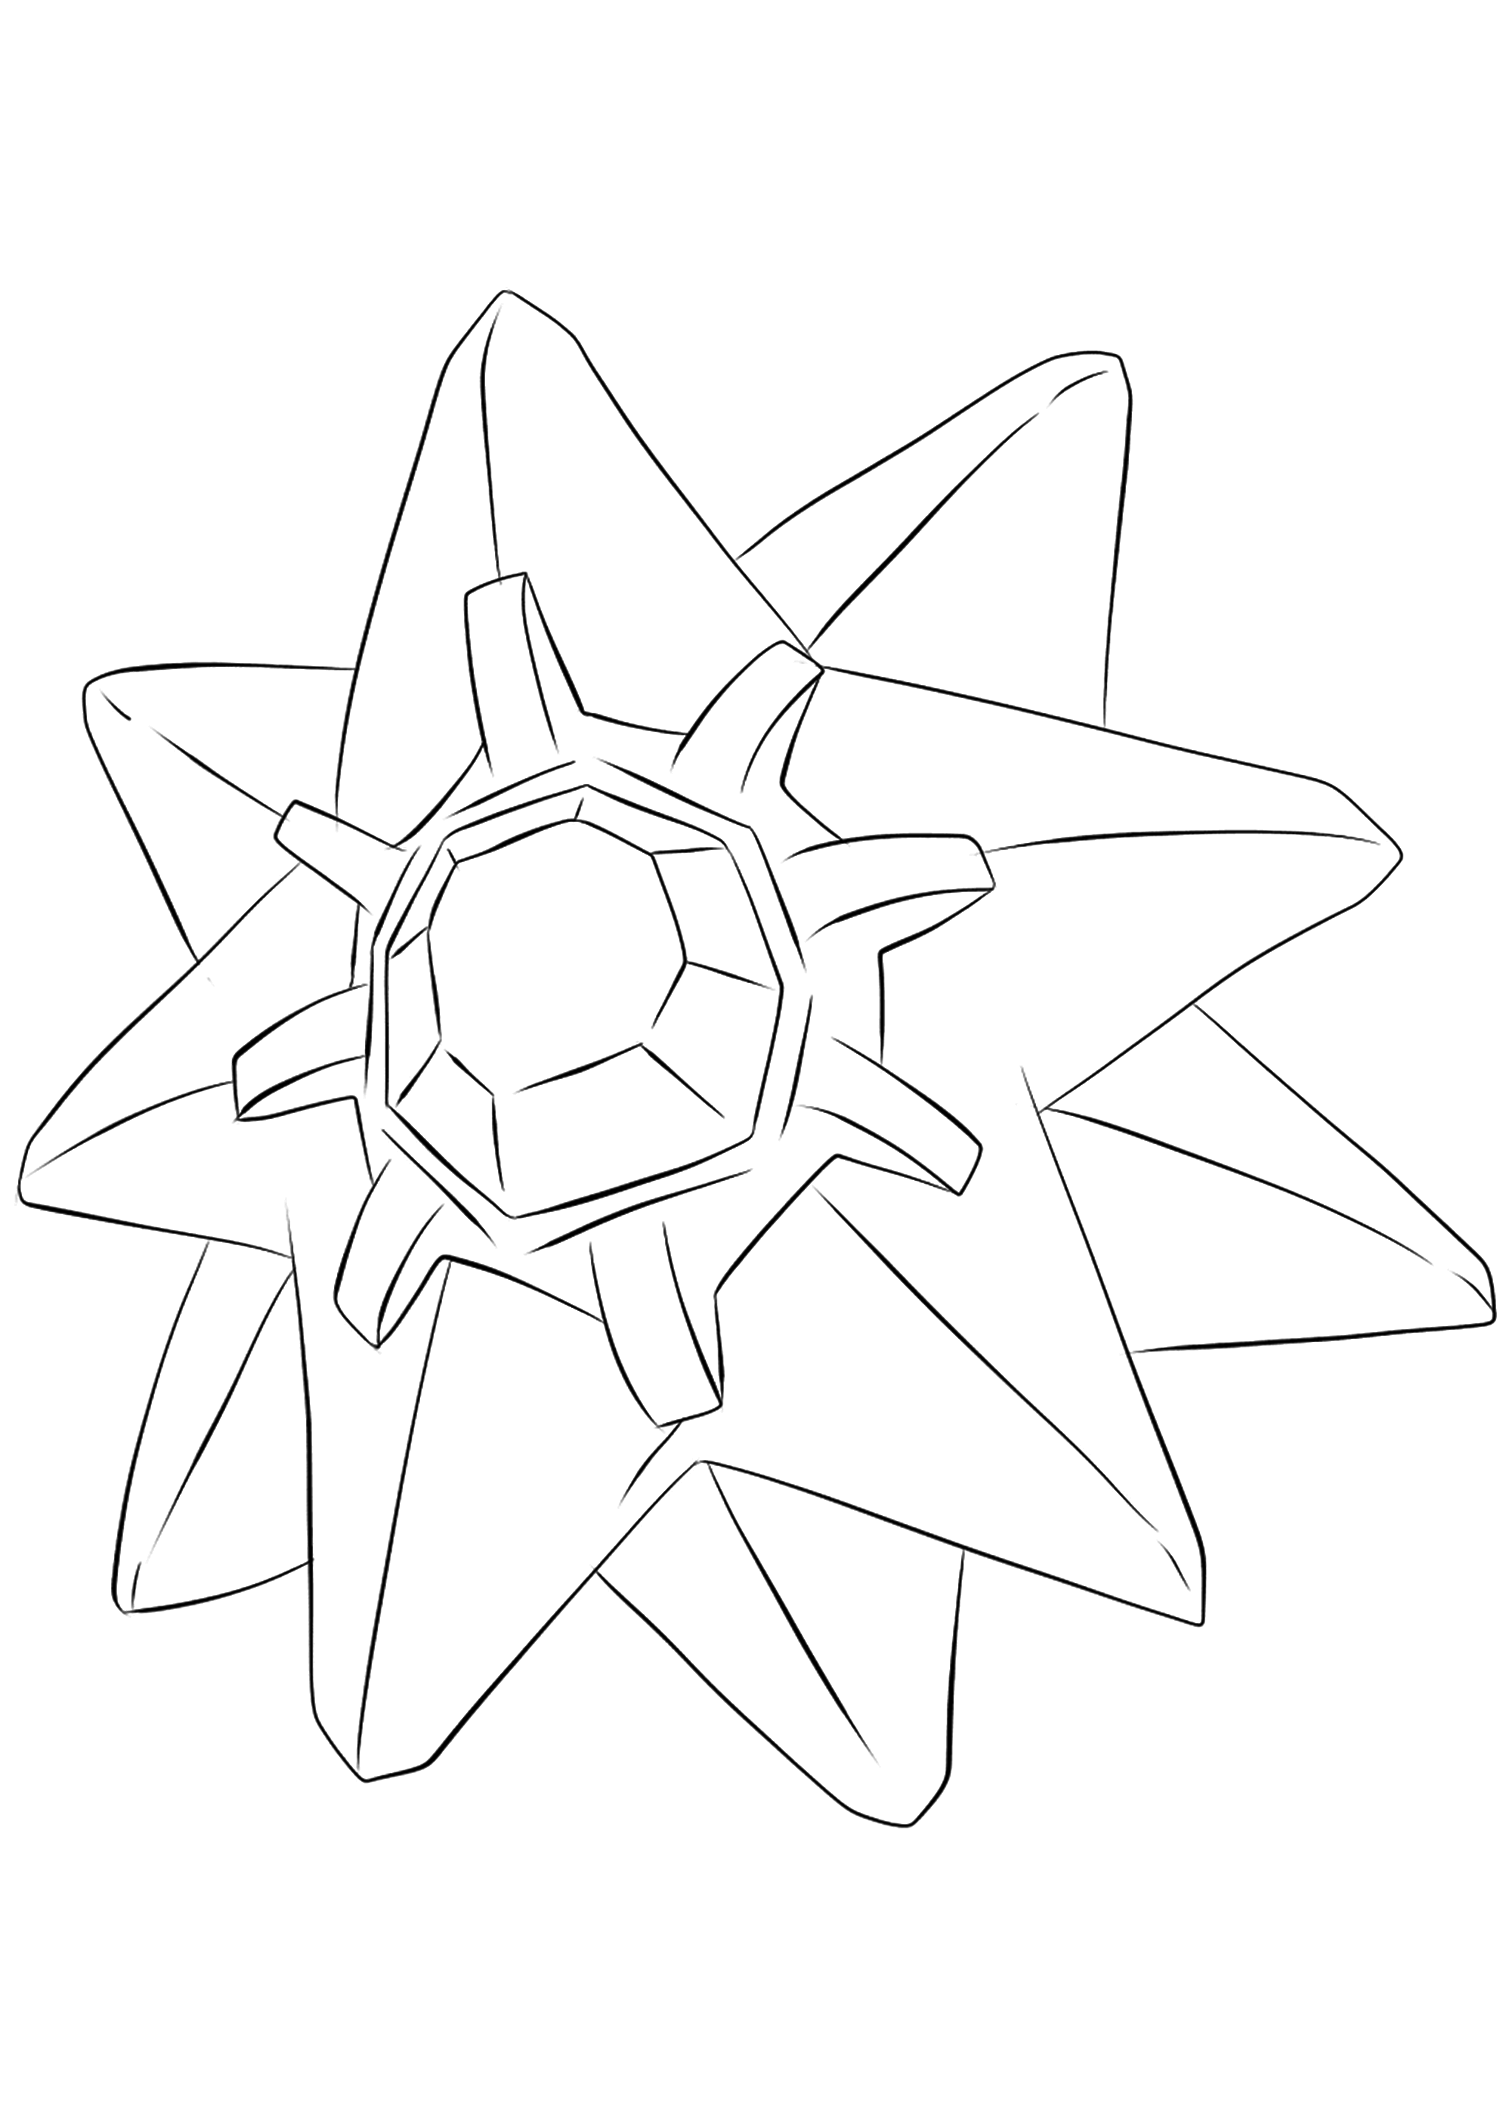 Starmie (No.121)Starmie Coloring page, Generation I Pokemon of type Water and PsychicOriginal image credit: Pokemon linearts by Lilly Gerbil on Deviantart.Permission:  All rights reserved © Pokemon company and Ken Sugimori.